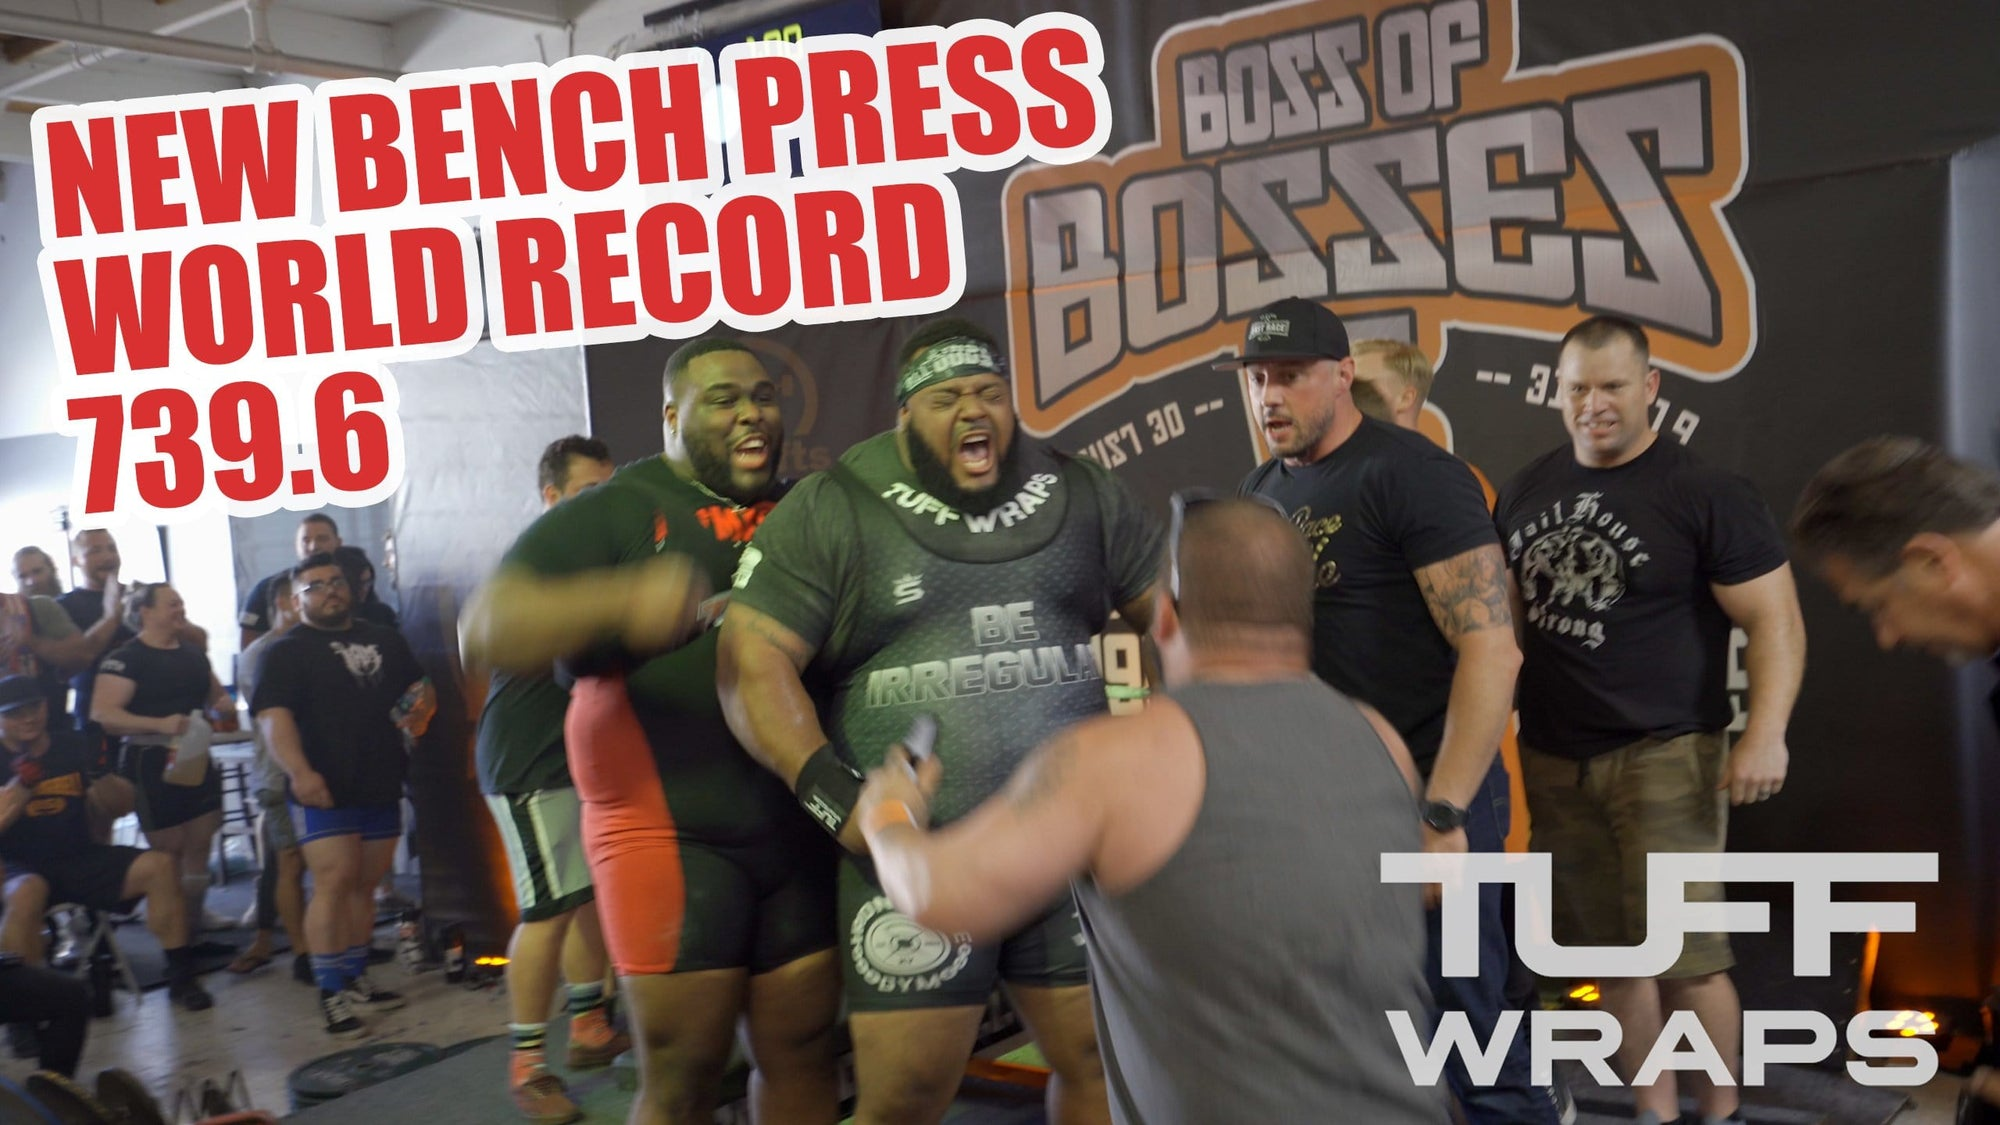 VIDEO: Julius Maddox is Now The World Bench Press Record Holder (739.6 lbs / 335.5kg)